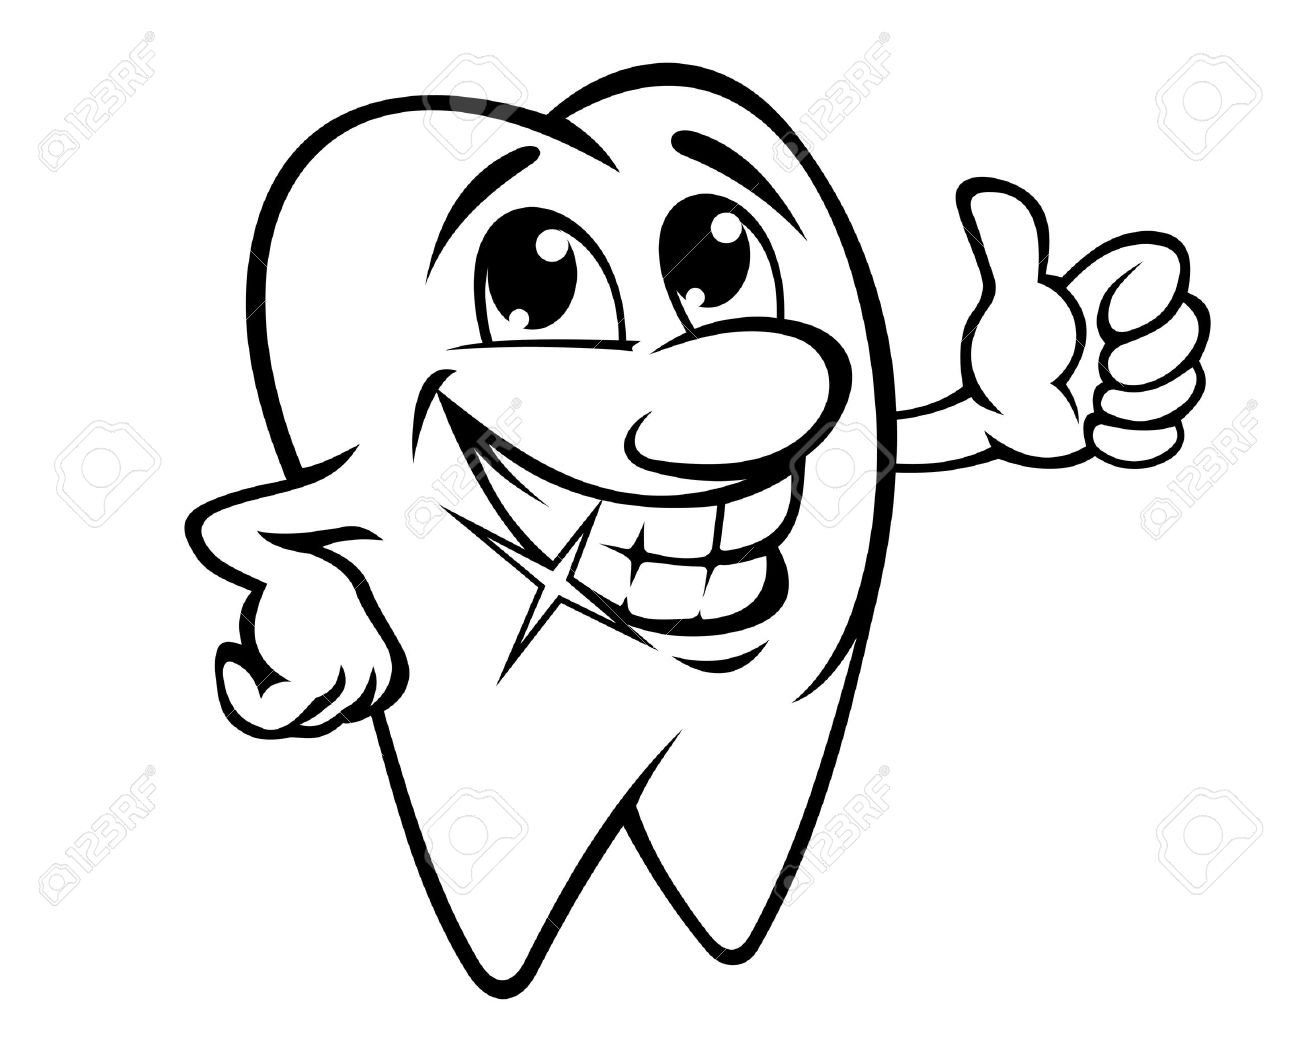 Image result for smiling with teeth cartoons